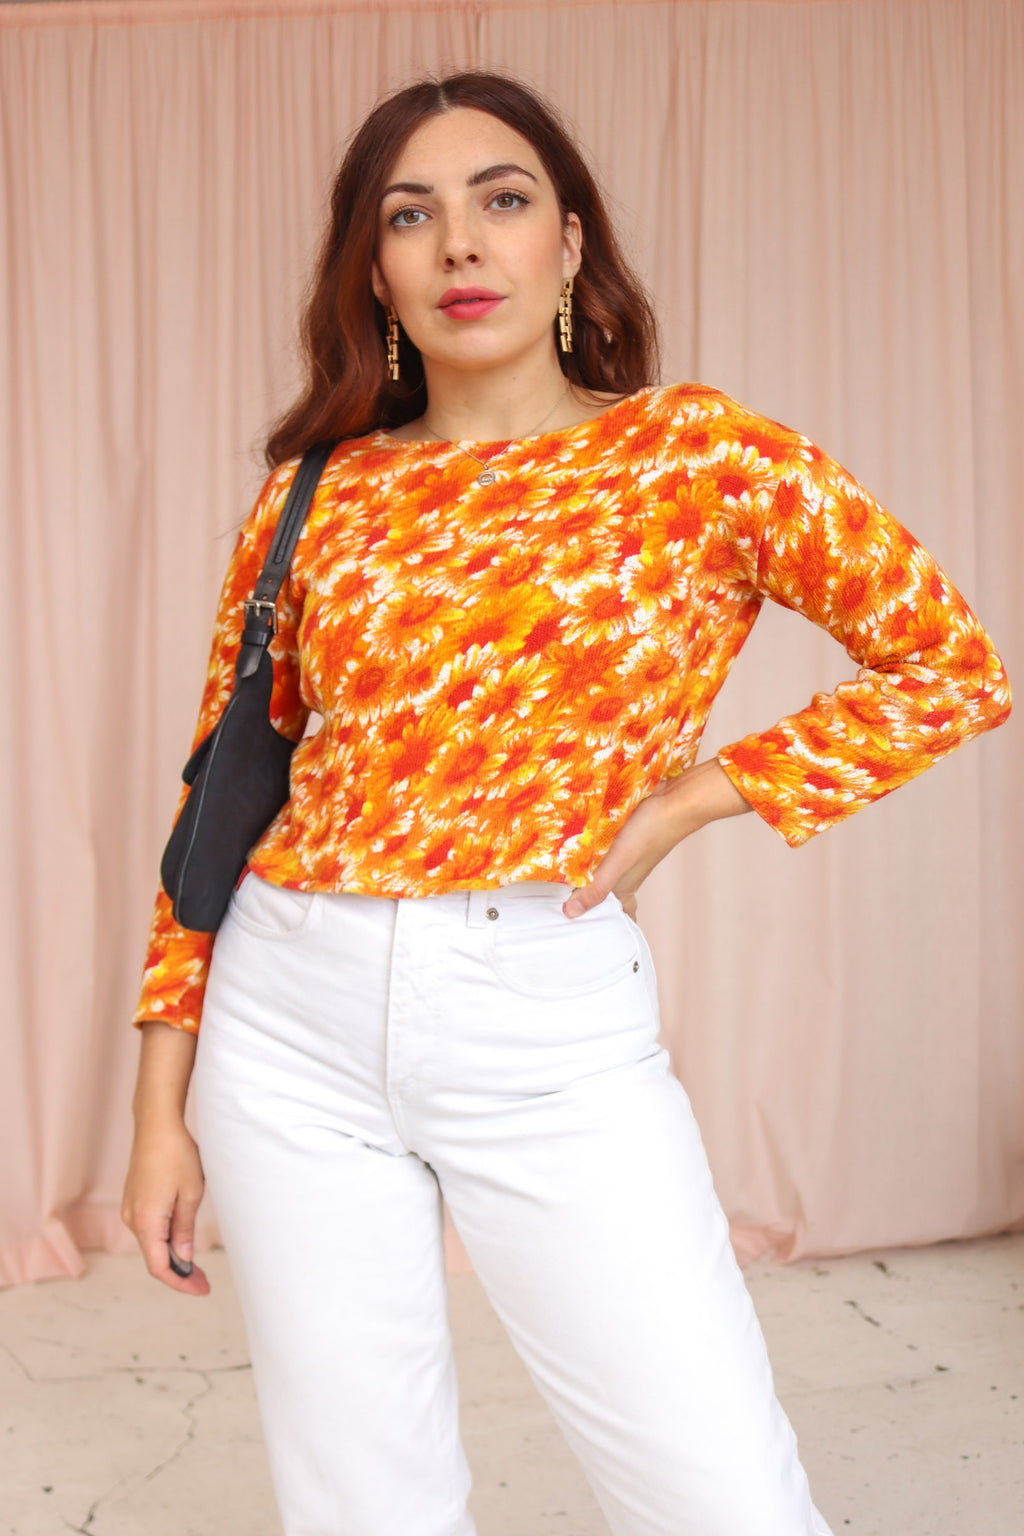 VintageJumper in Orange Daisy Print - Dirty Disco